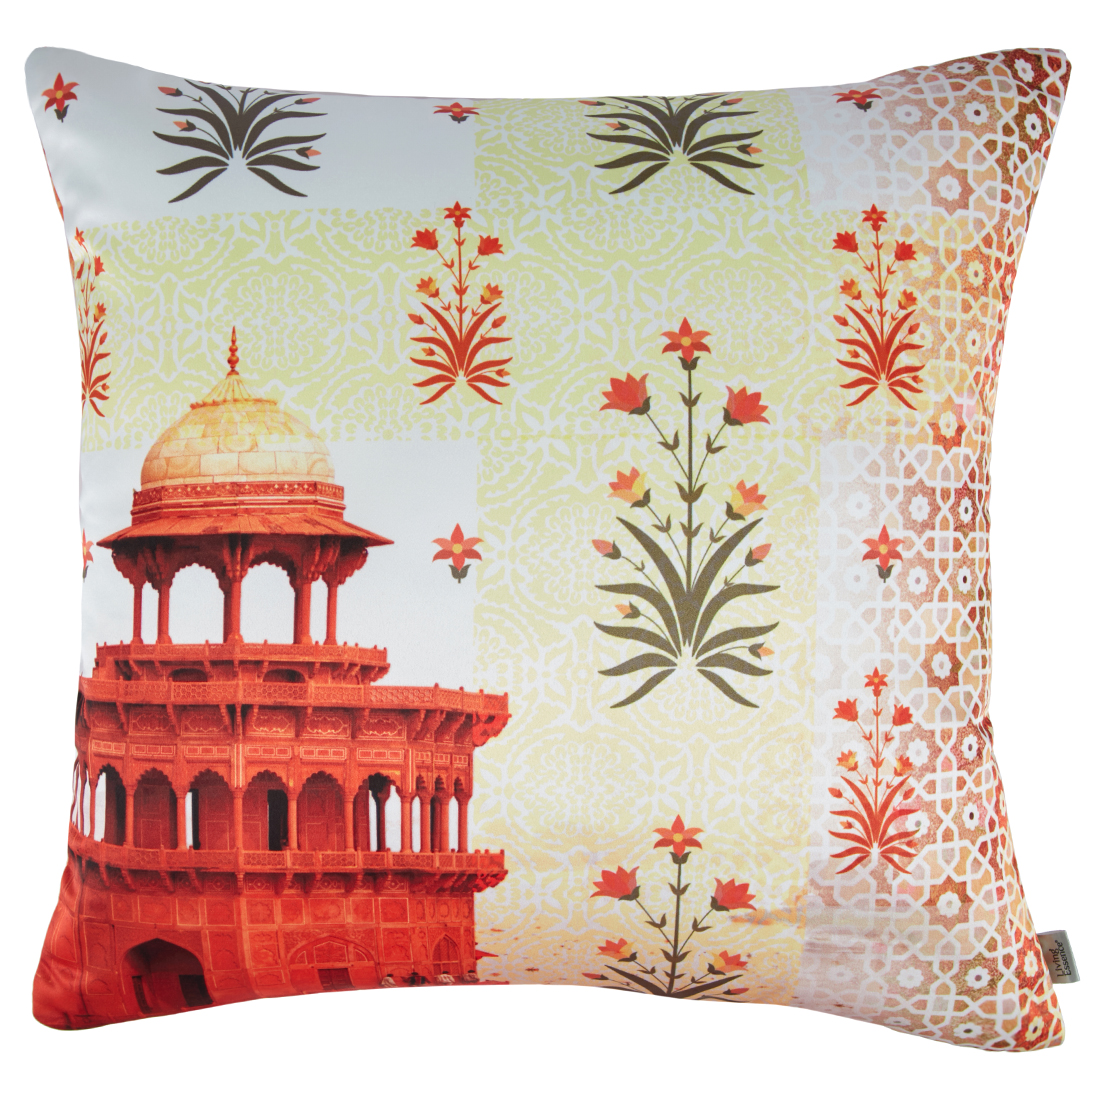 Digital Cushion Cover Samarkand Cushion Covers in Poly Satin Colour by Living Essence